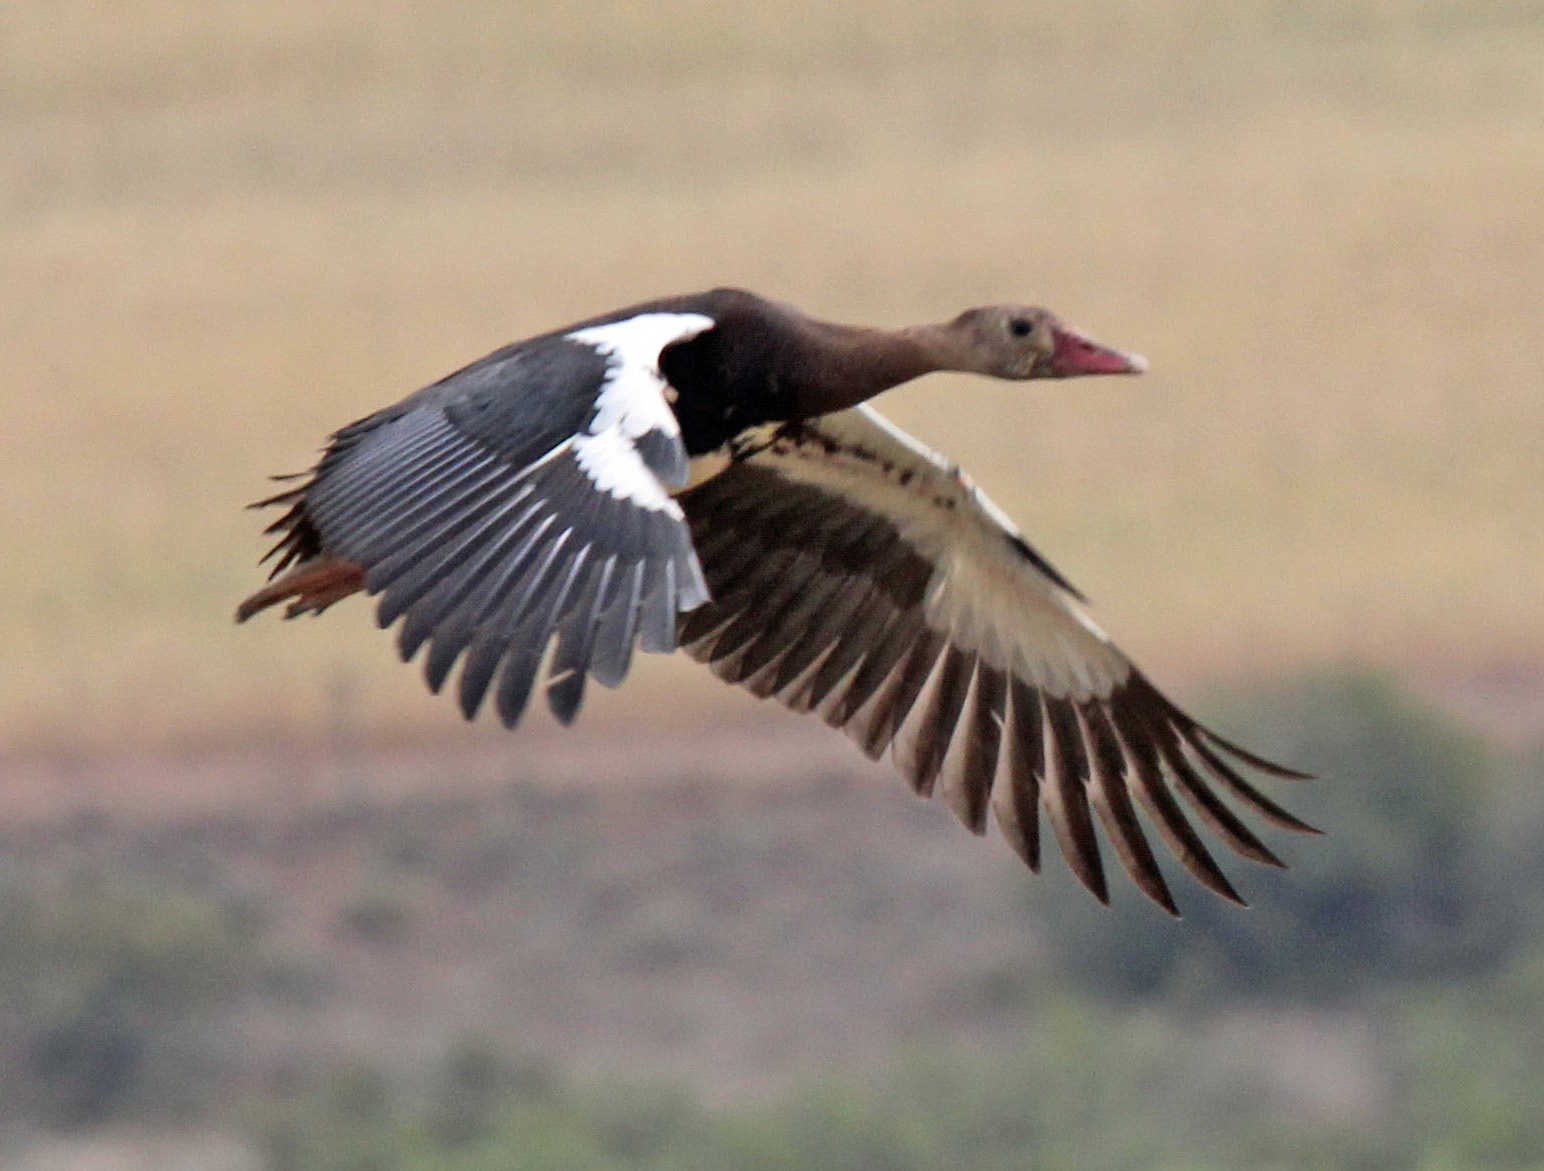 Spur-Winged Goose. Photo credit: Dick Daniels. https://commons.wikimedia.org/wiki/File:Spur-winged_Goose_RWD4.jpg